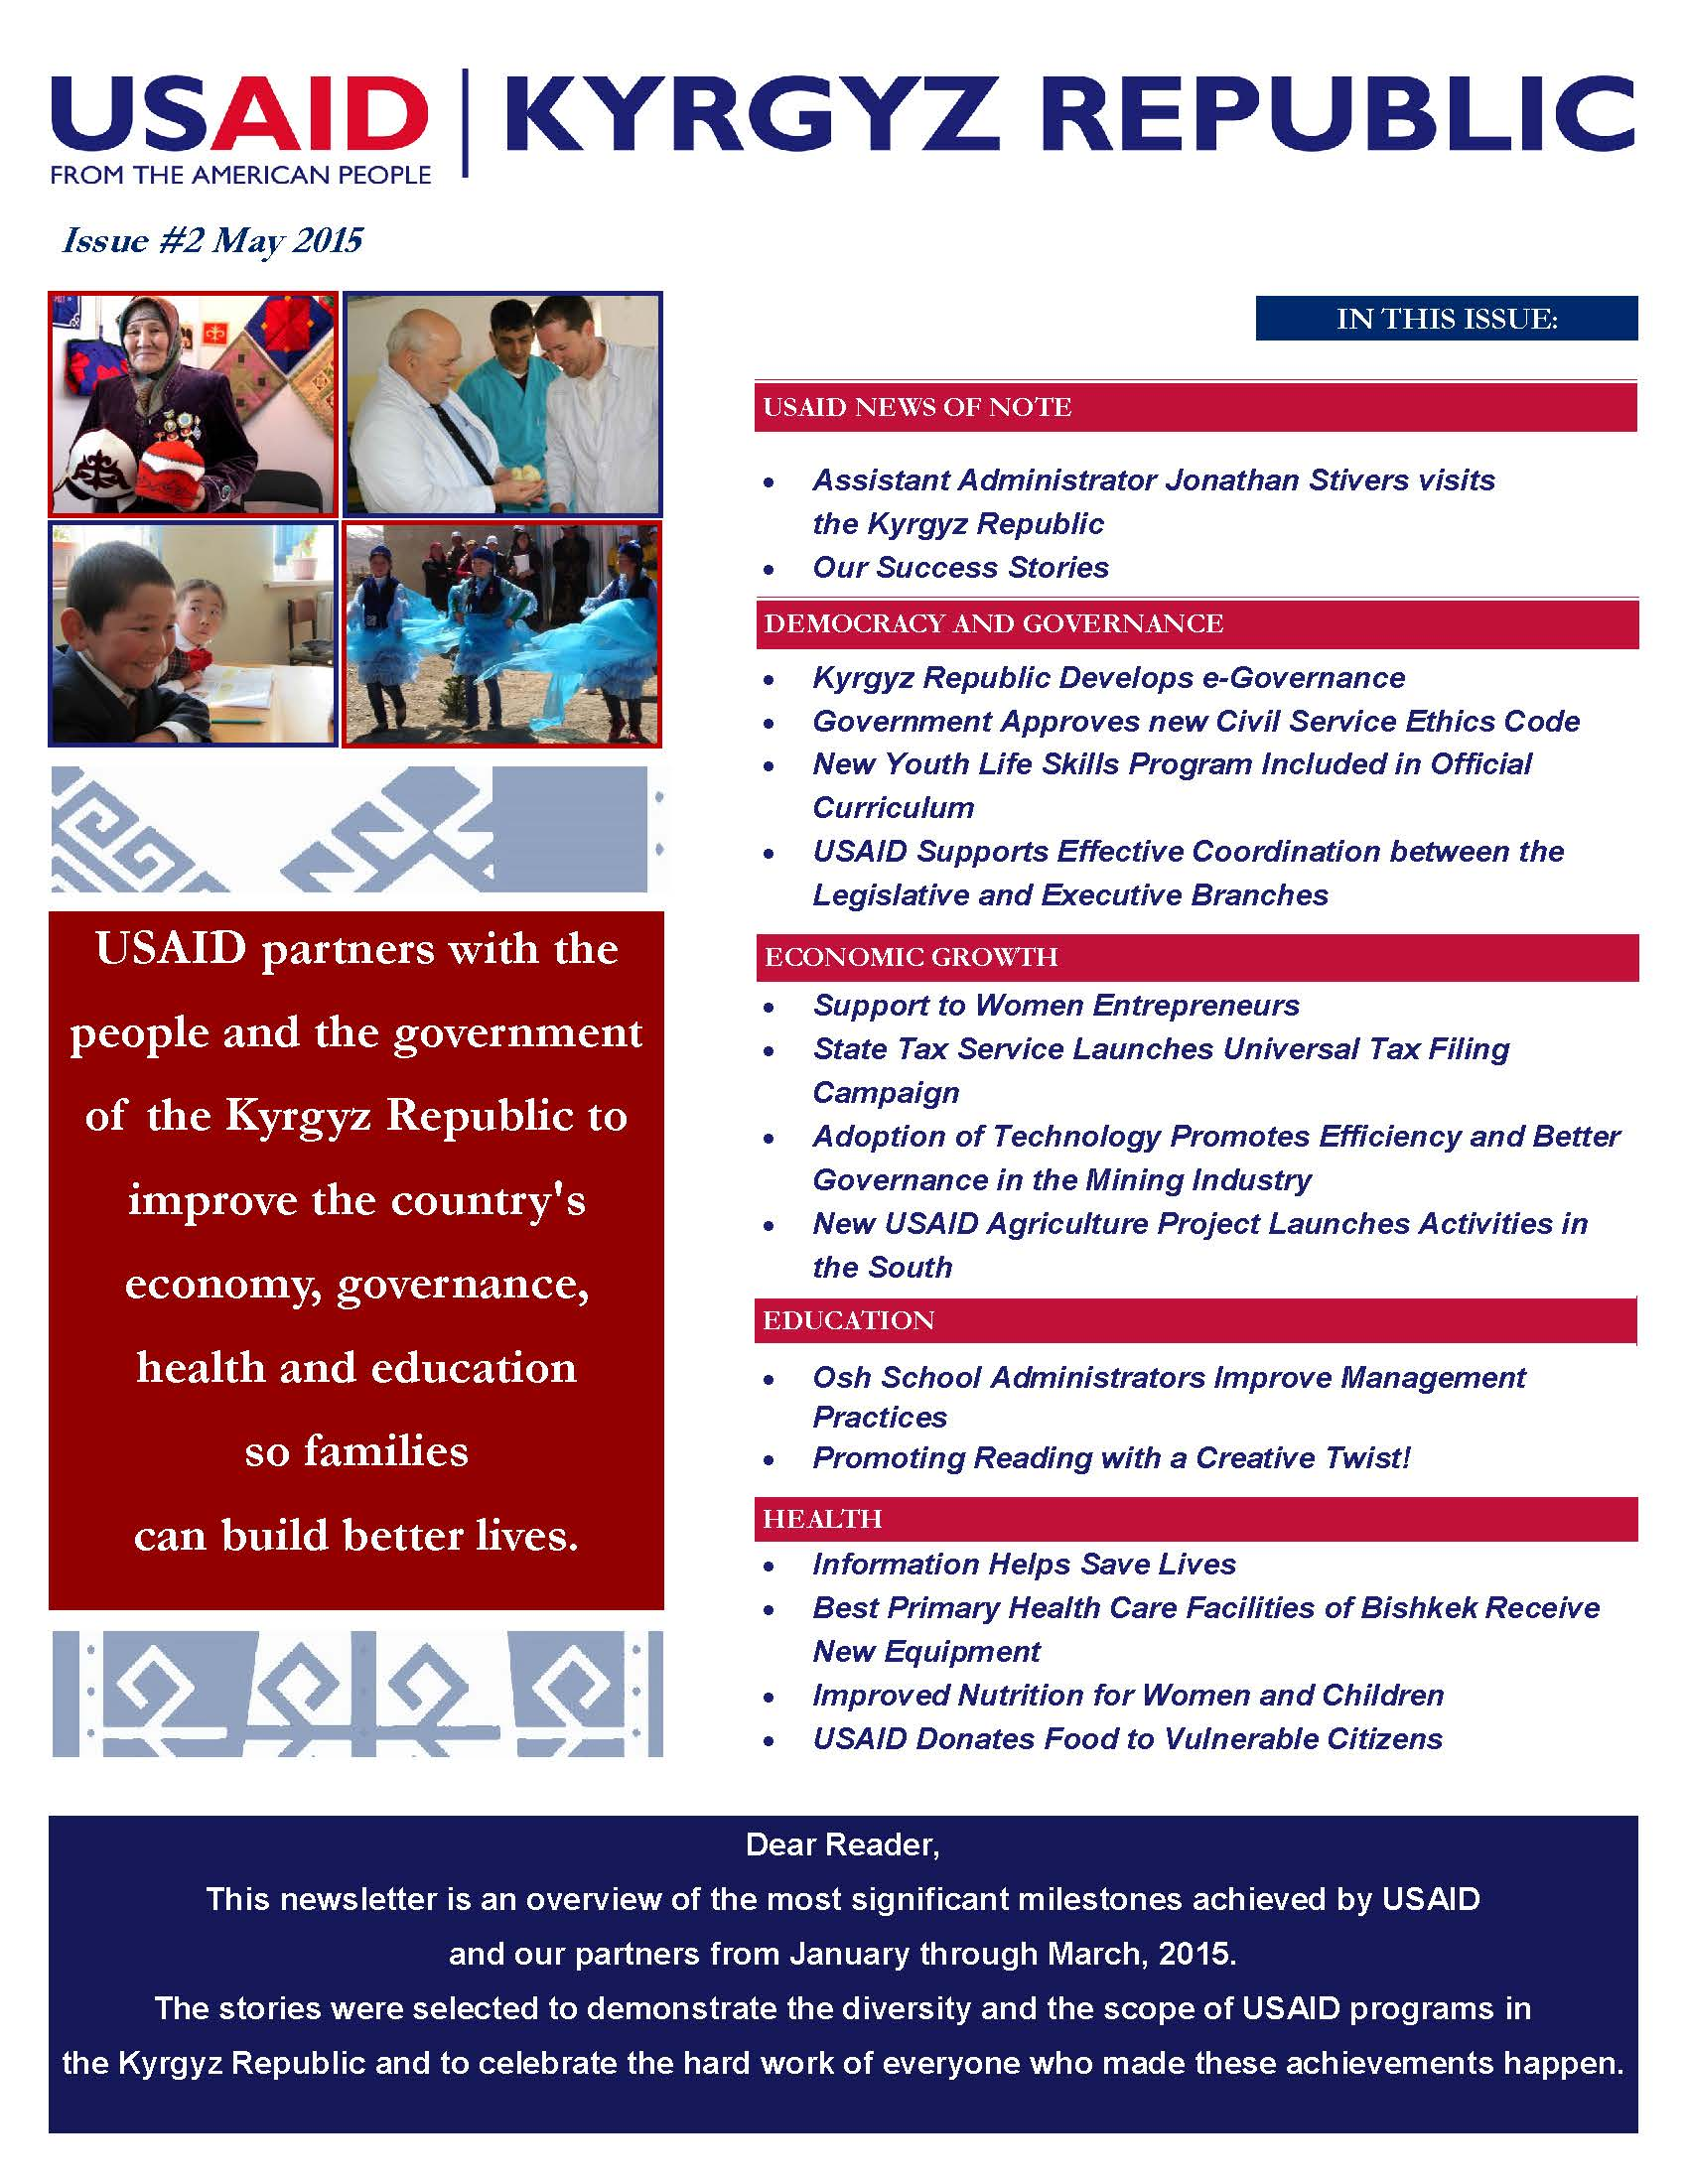 USAID Kyrgyz Republic Quarterly Newsletter, Issue 2